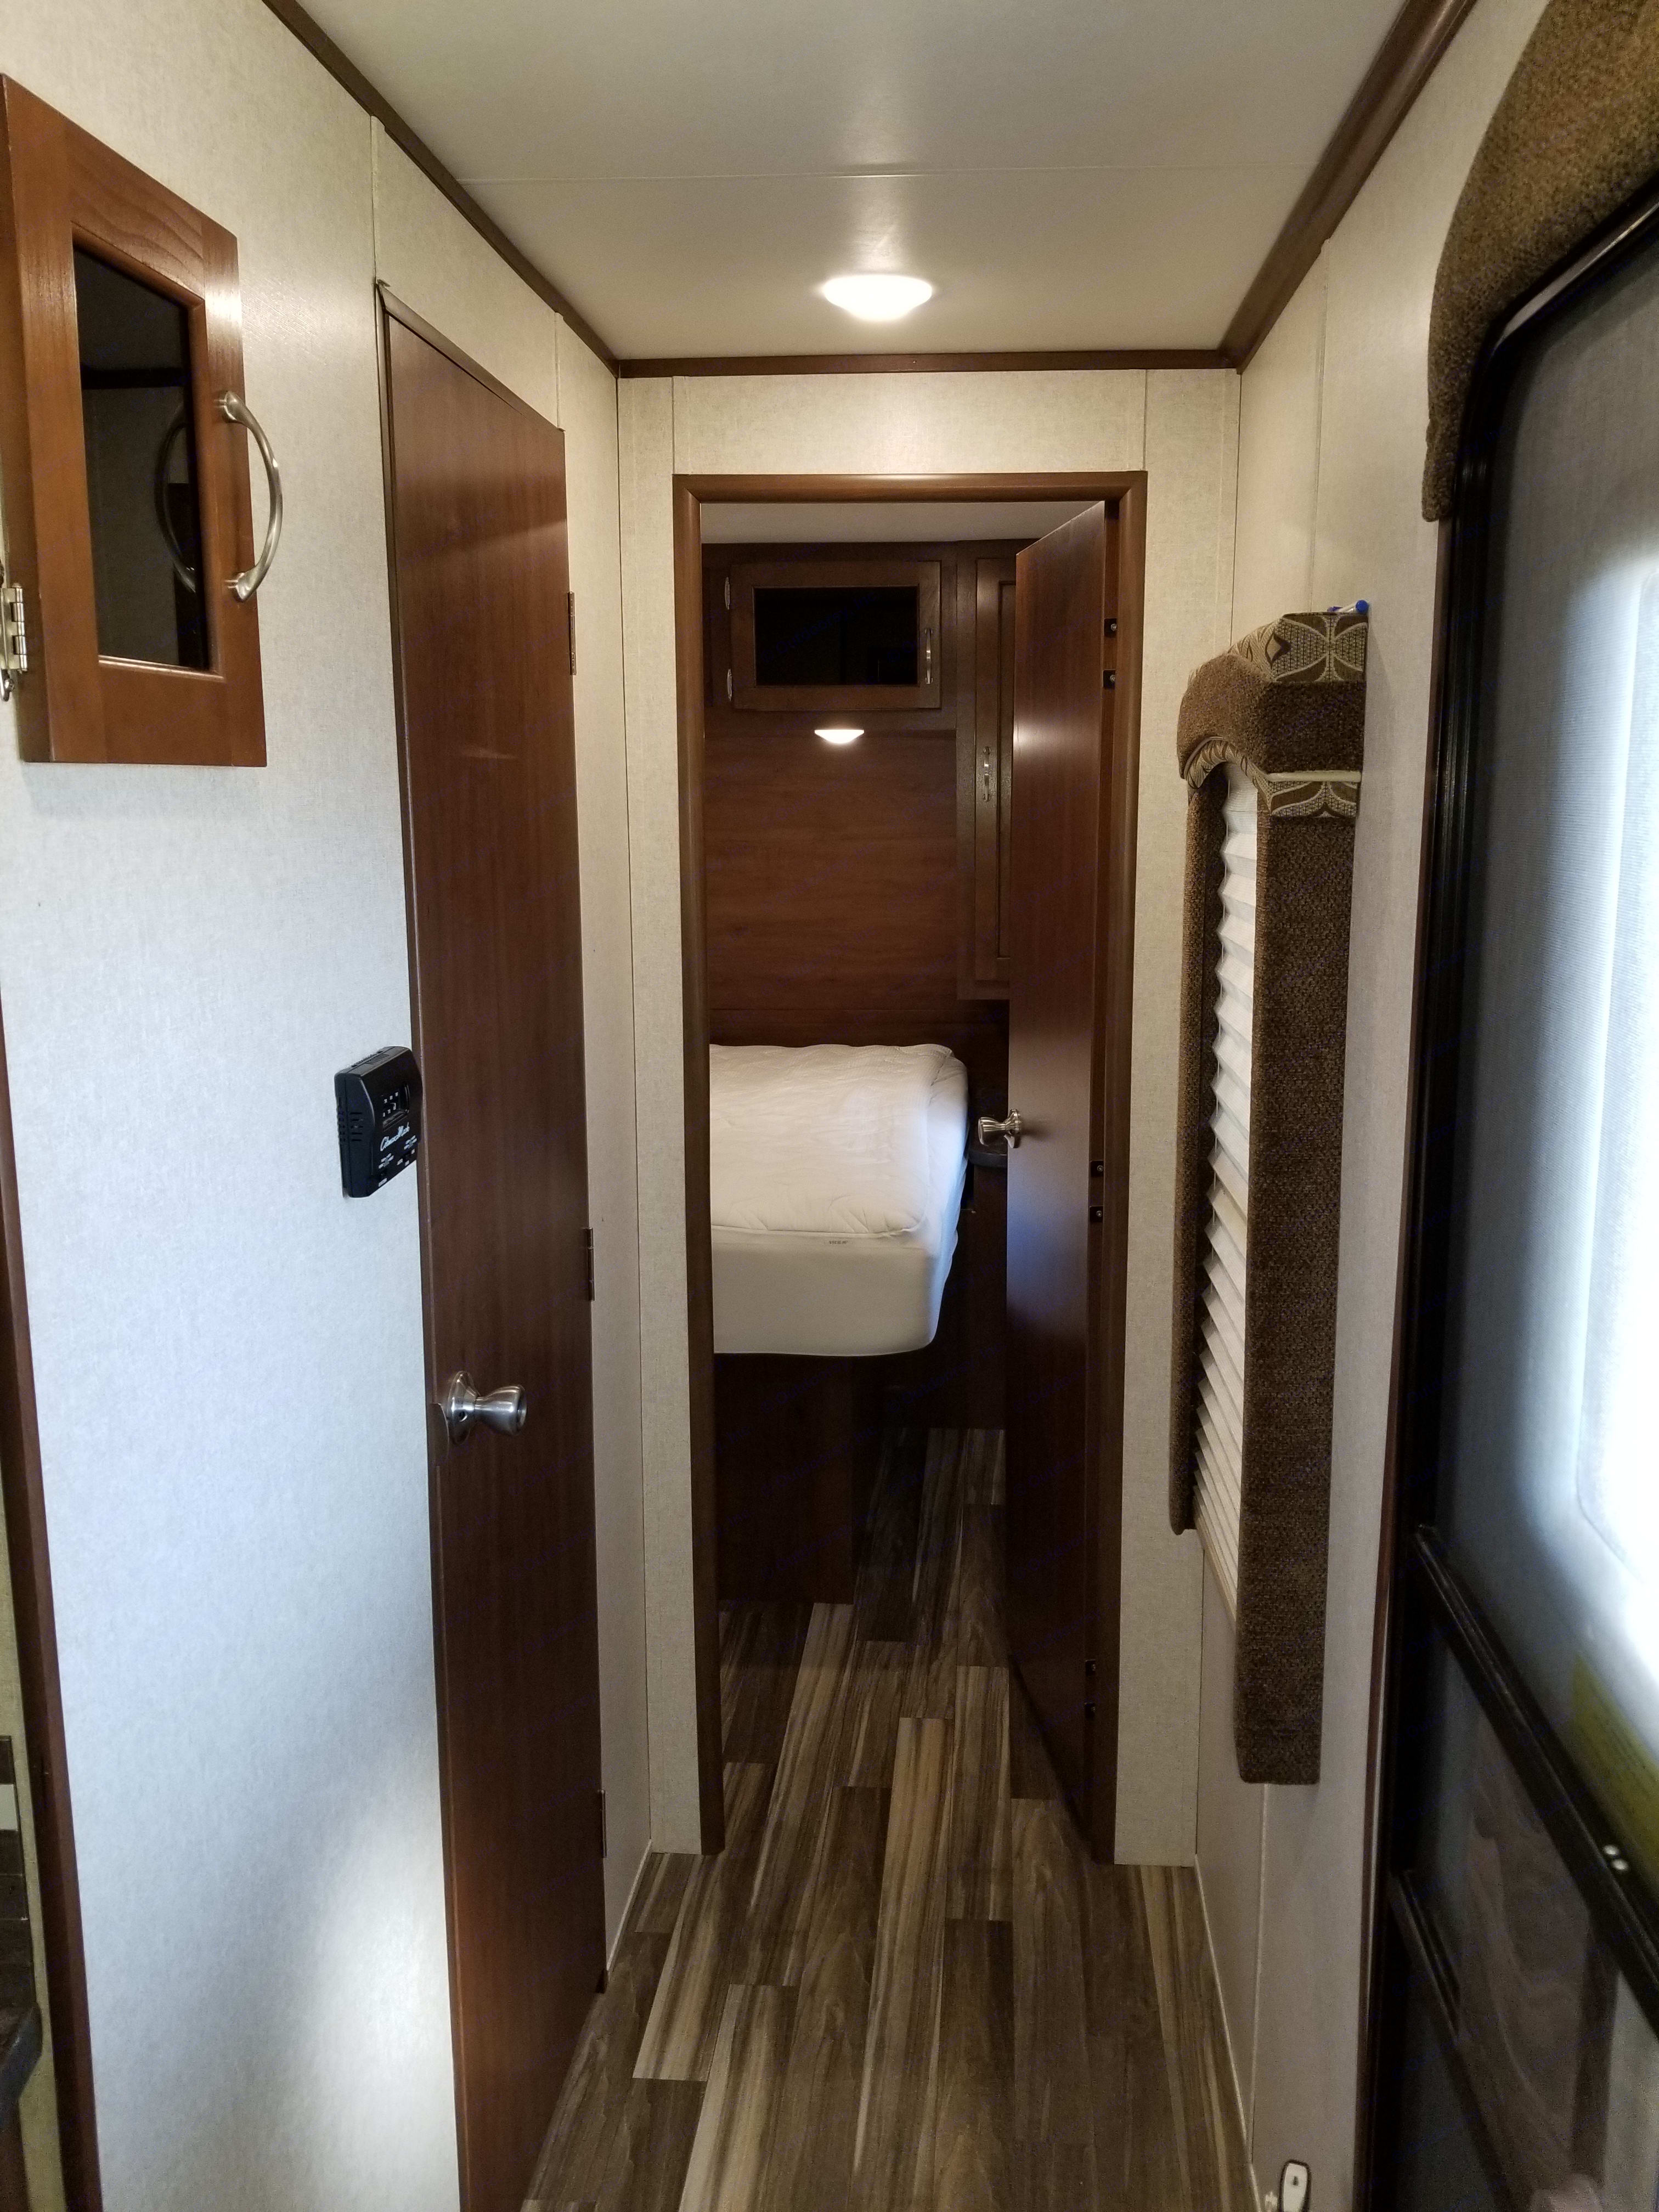 Private master bedroom. Jayco Jay Flight 2017